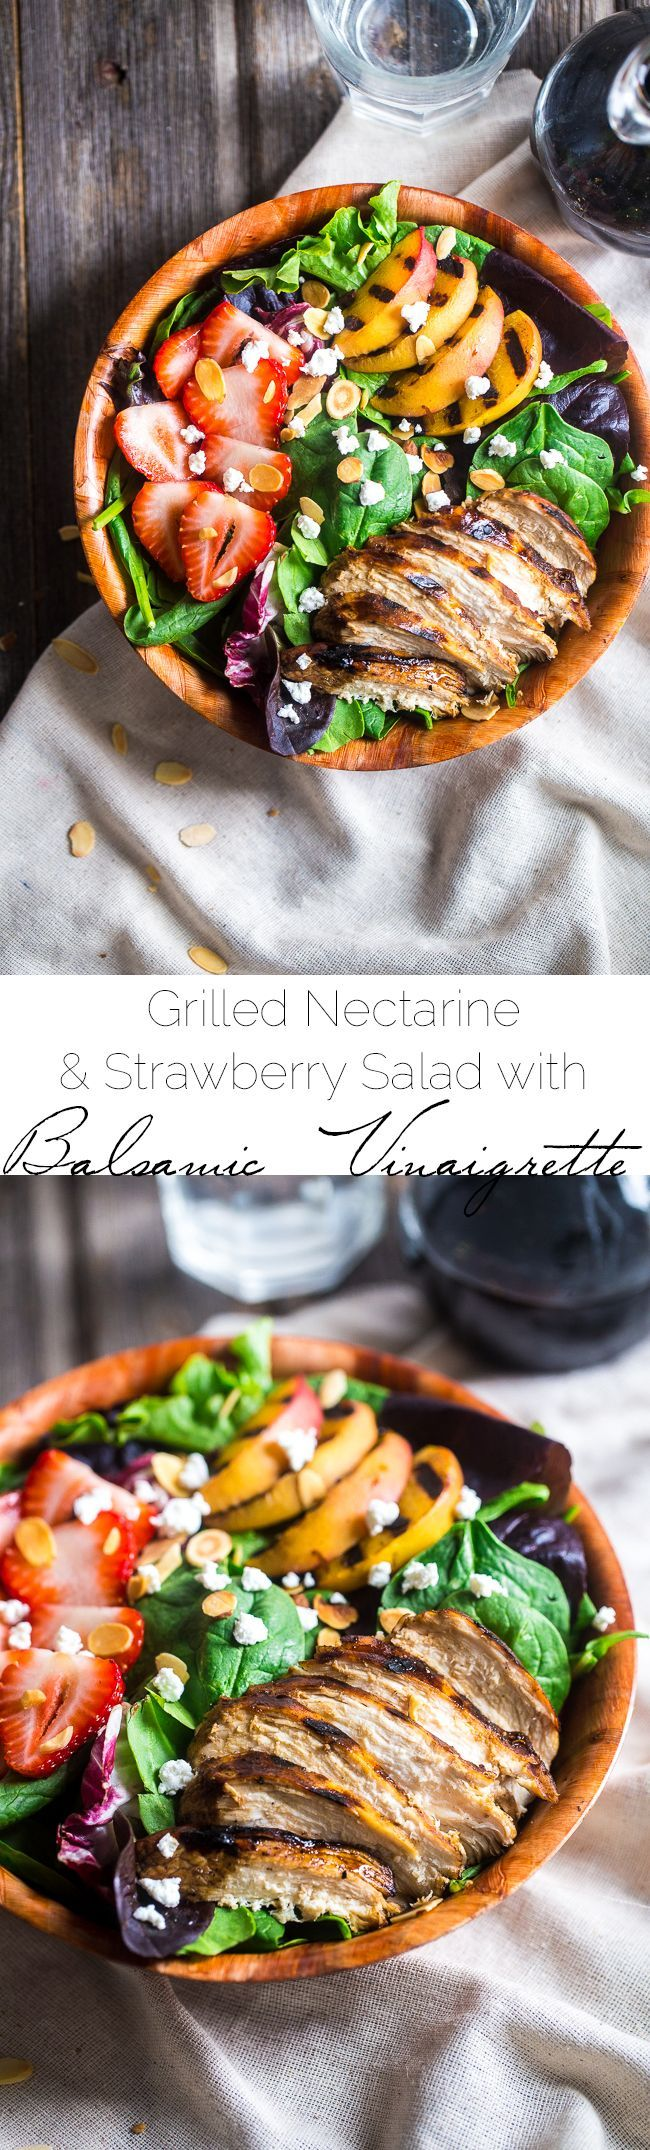 Strawberry Salad with Grilled Nectarines and Balsamic Vinaigrette - A healthy, summer salad that is loaded with sweet strawberries, grilled chicken and nectarines and topped with tangy balsamic vinaigrette. Easy and gluten free!